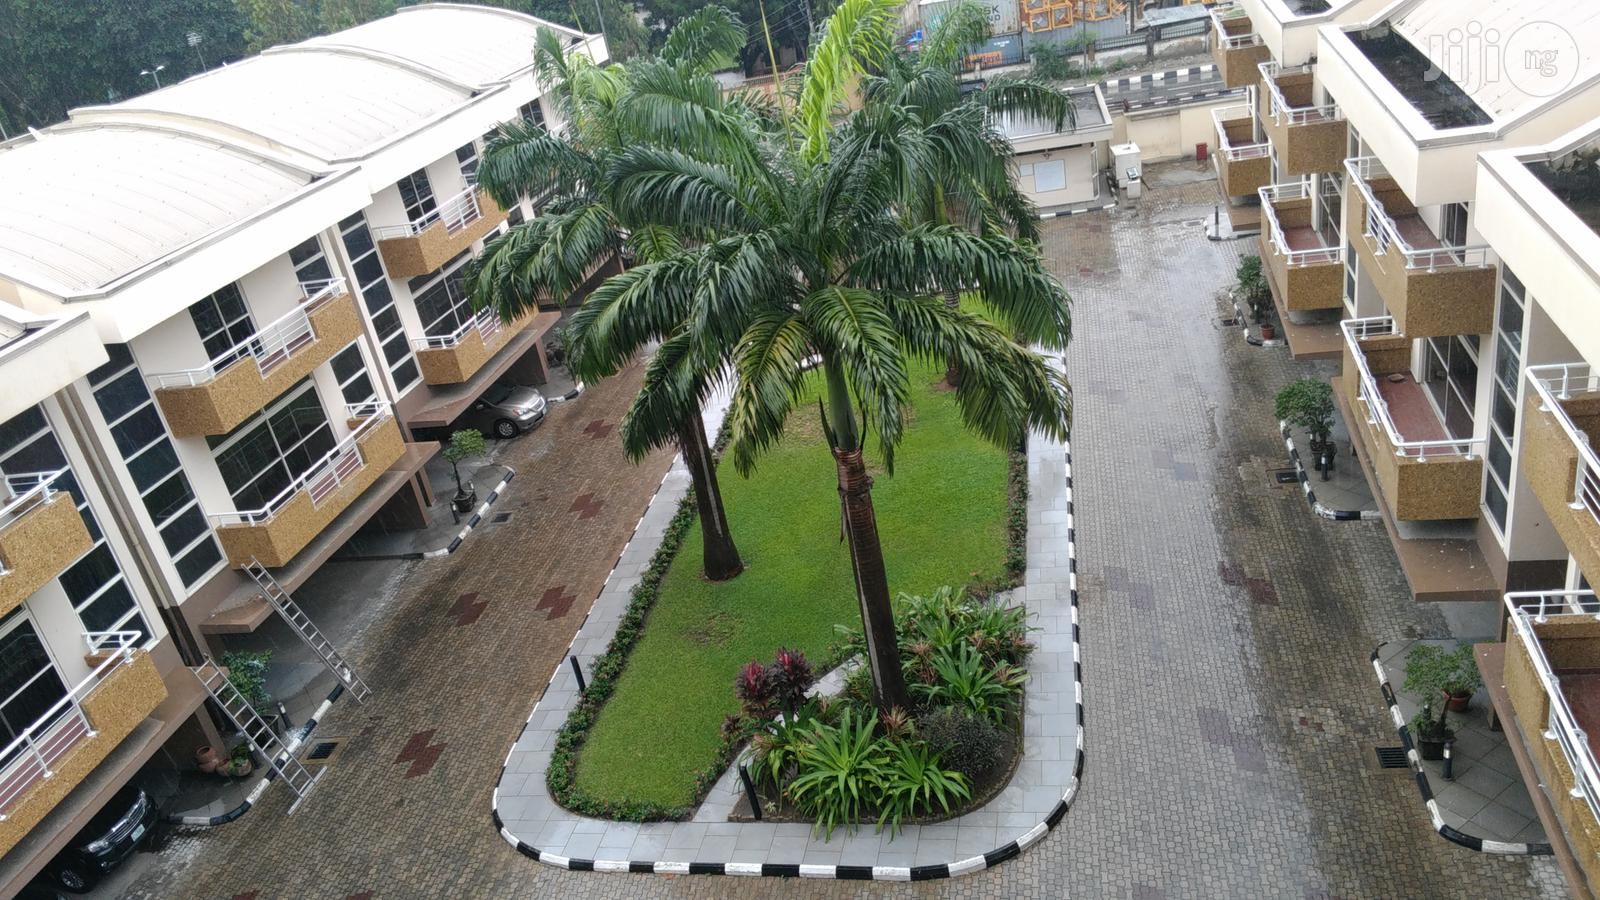 4 Bedroom Town House Apartment - In Ikoyi for Lease/Sale | Houses & Apartments For Rent for sale in Ikoyi, Lagos State, Nigeria